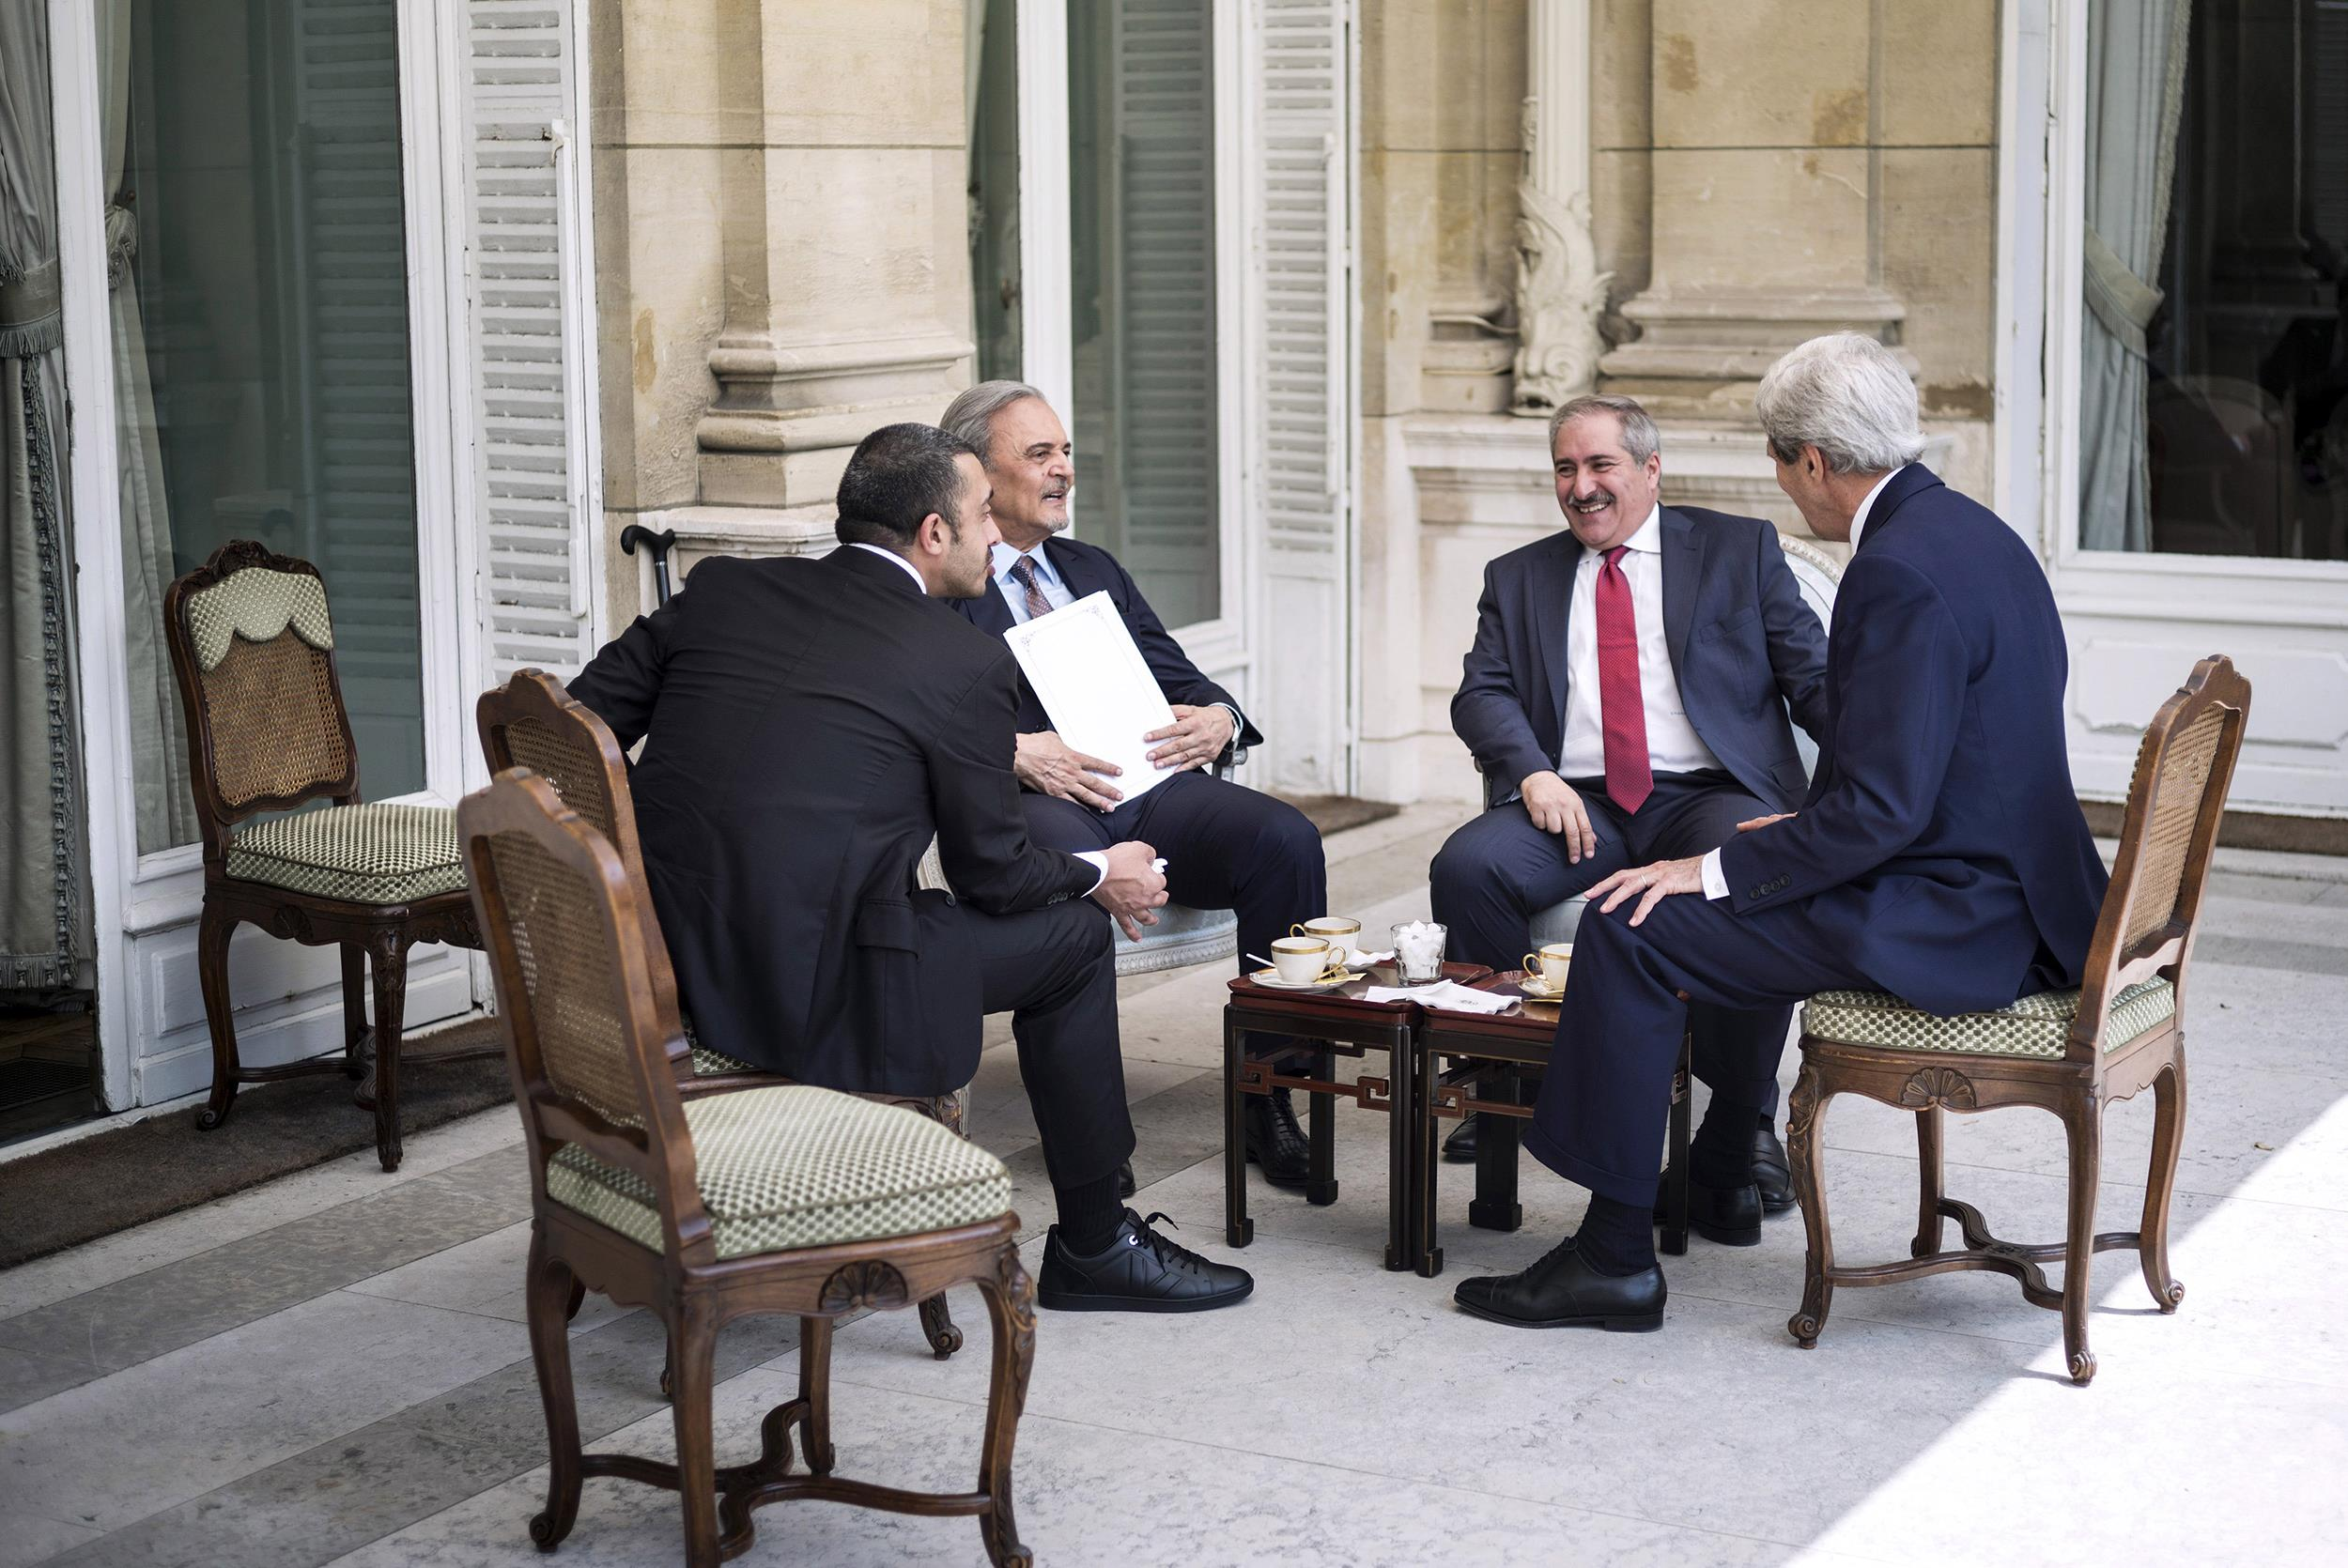 Image: From left, Emirati Foreign Minister Sheikh Abdullah bin Zayed al-Nahyan, Saudi Arabia's Foreign Minister Prince Saud al-Faisal, Jordanian Foreign Minister Nasser Judeh and U.S. Secretary of State John Kerry